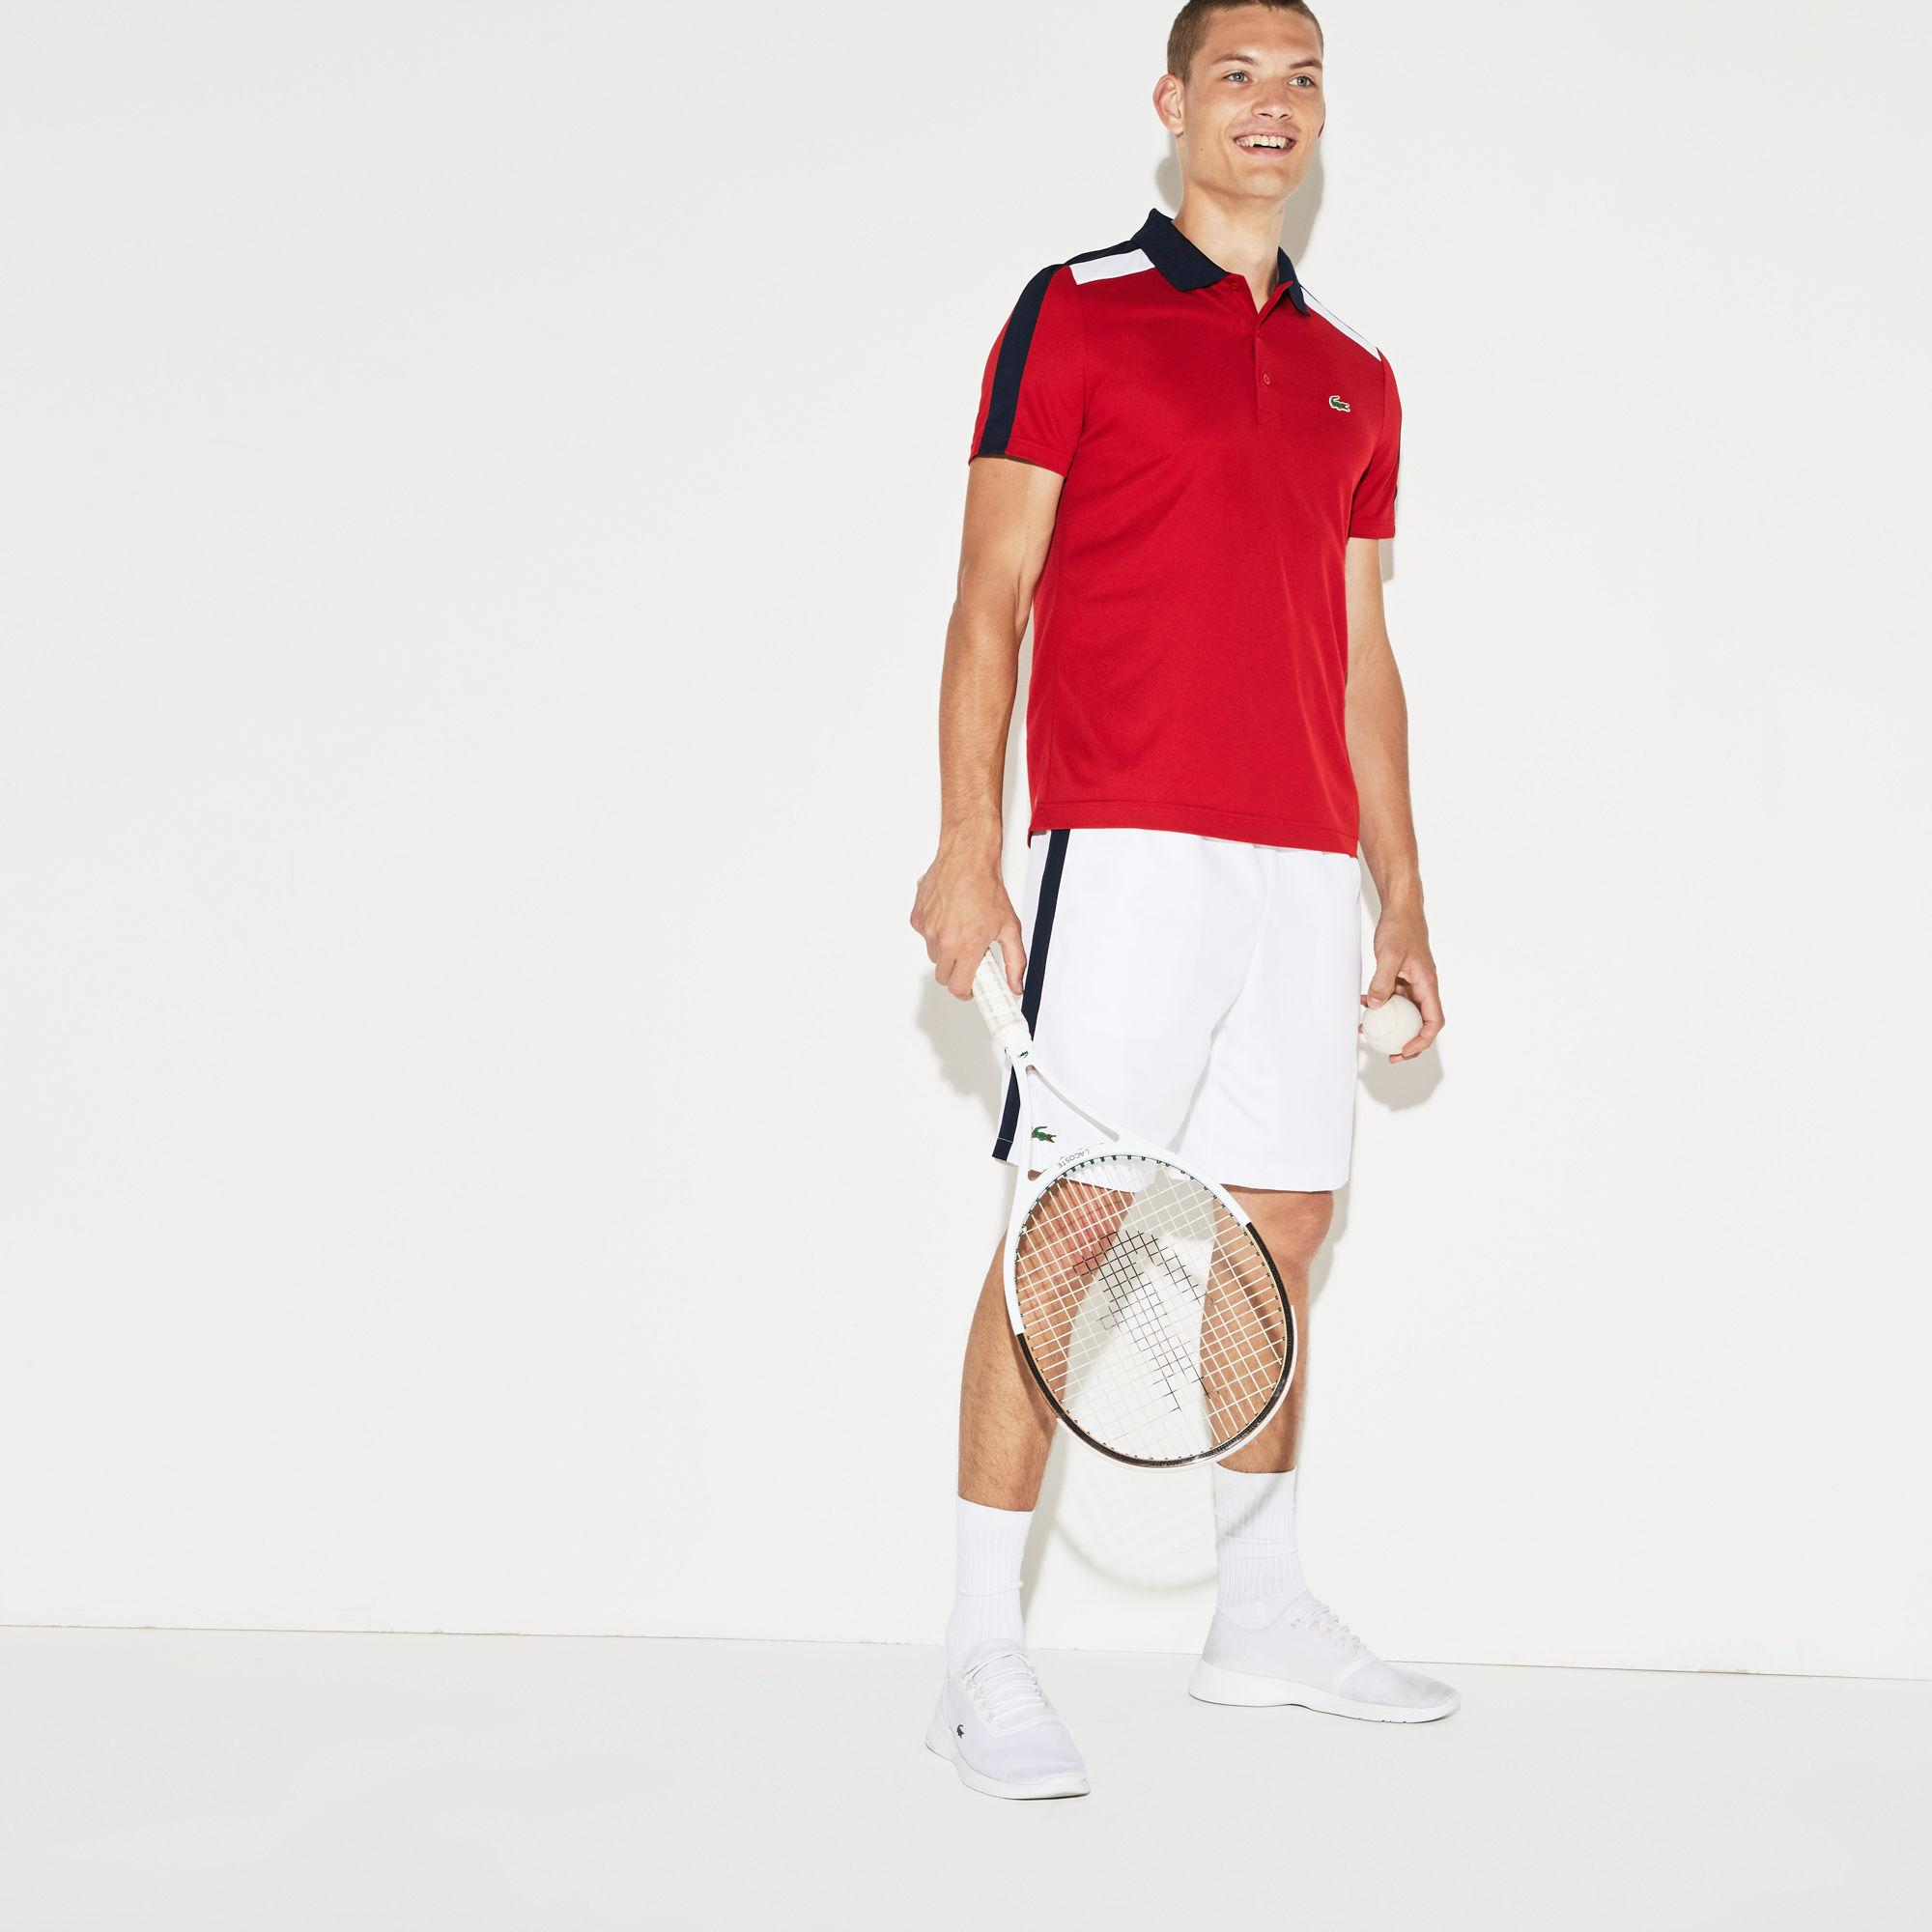 493ebe0a2840 Lyst - Lacoste Sport Colored Bands Taffeta Tennis Shorts for Men